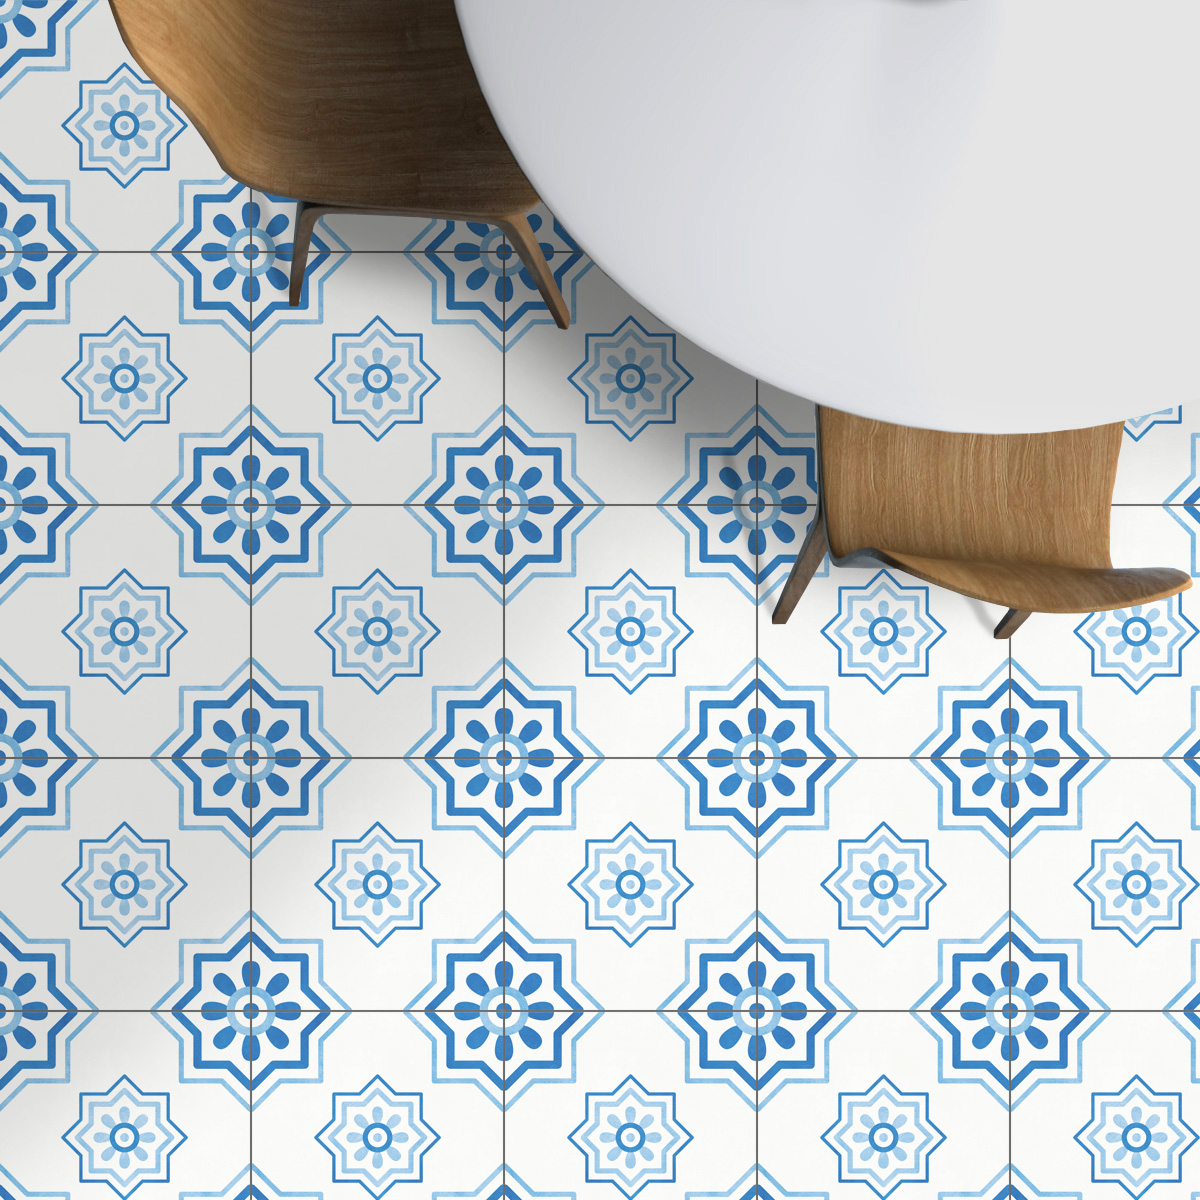 Málaga Tile Stickers, Mediterranean Tile Stickers, Tiles for Kitchen ...